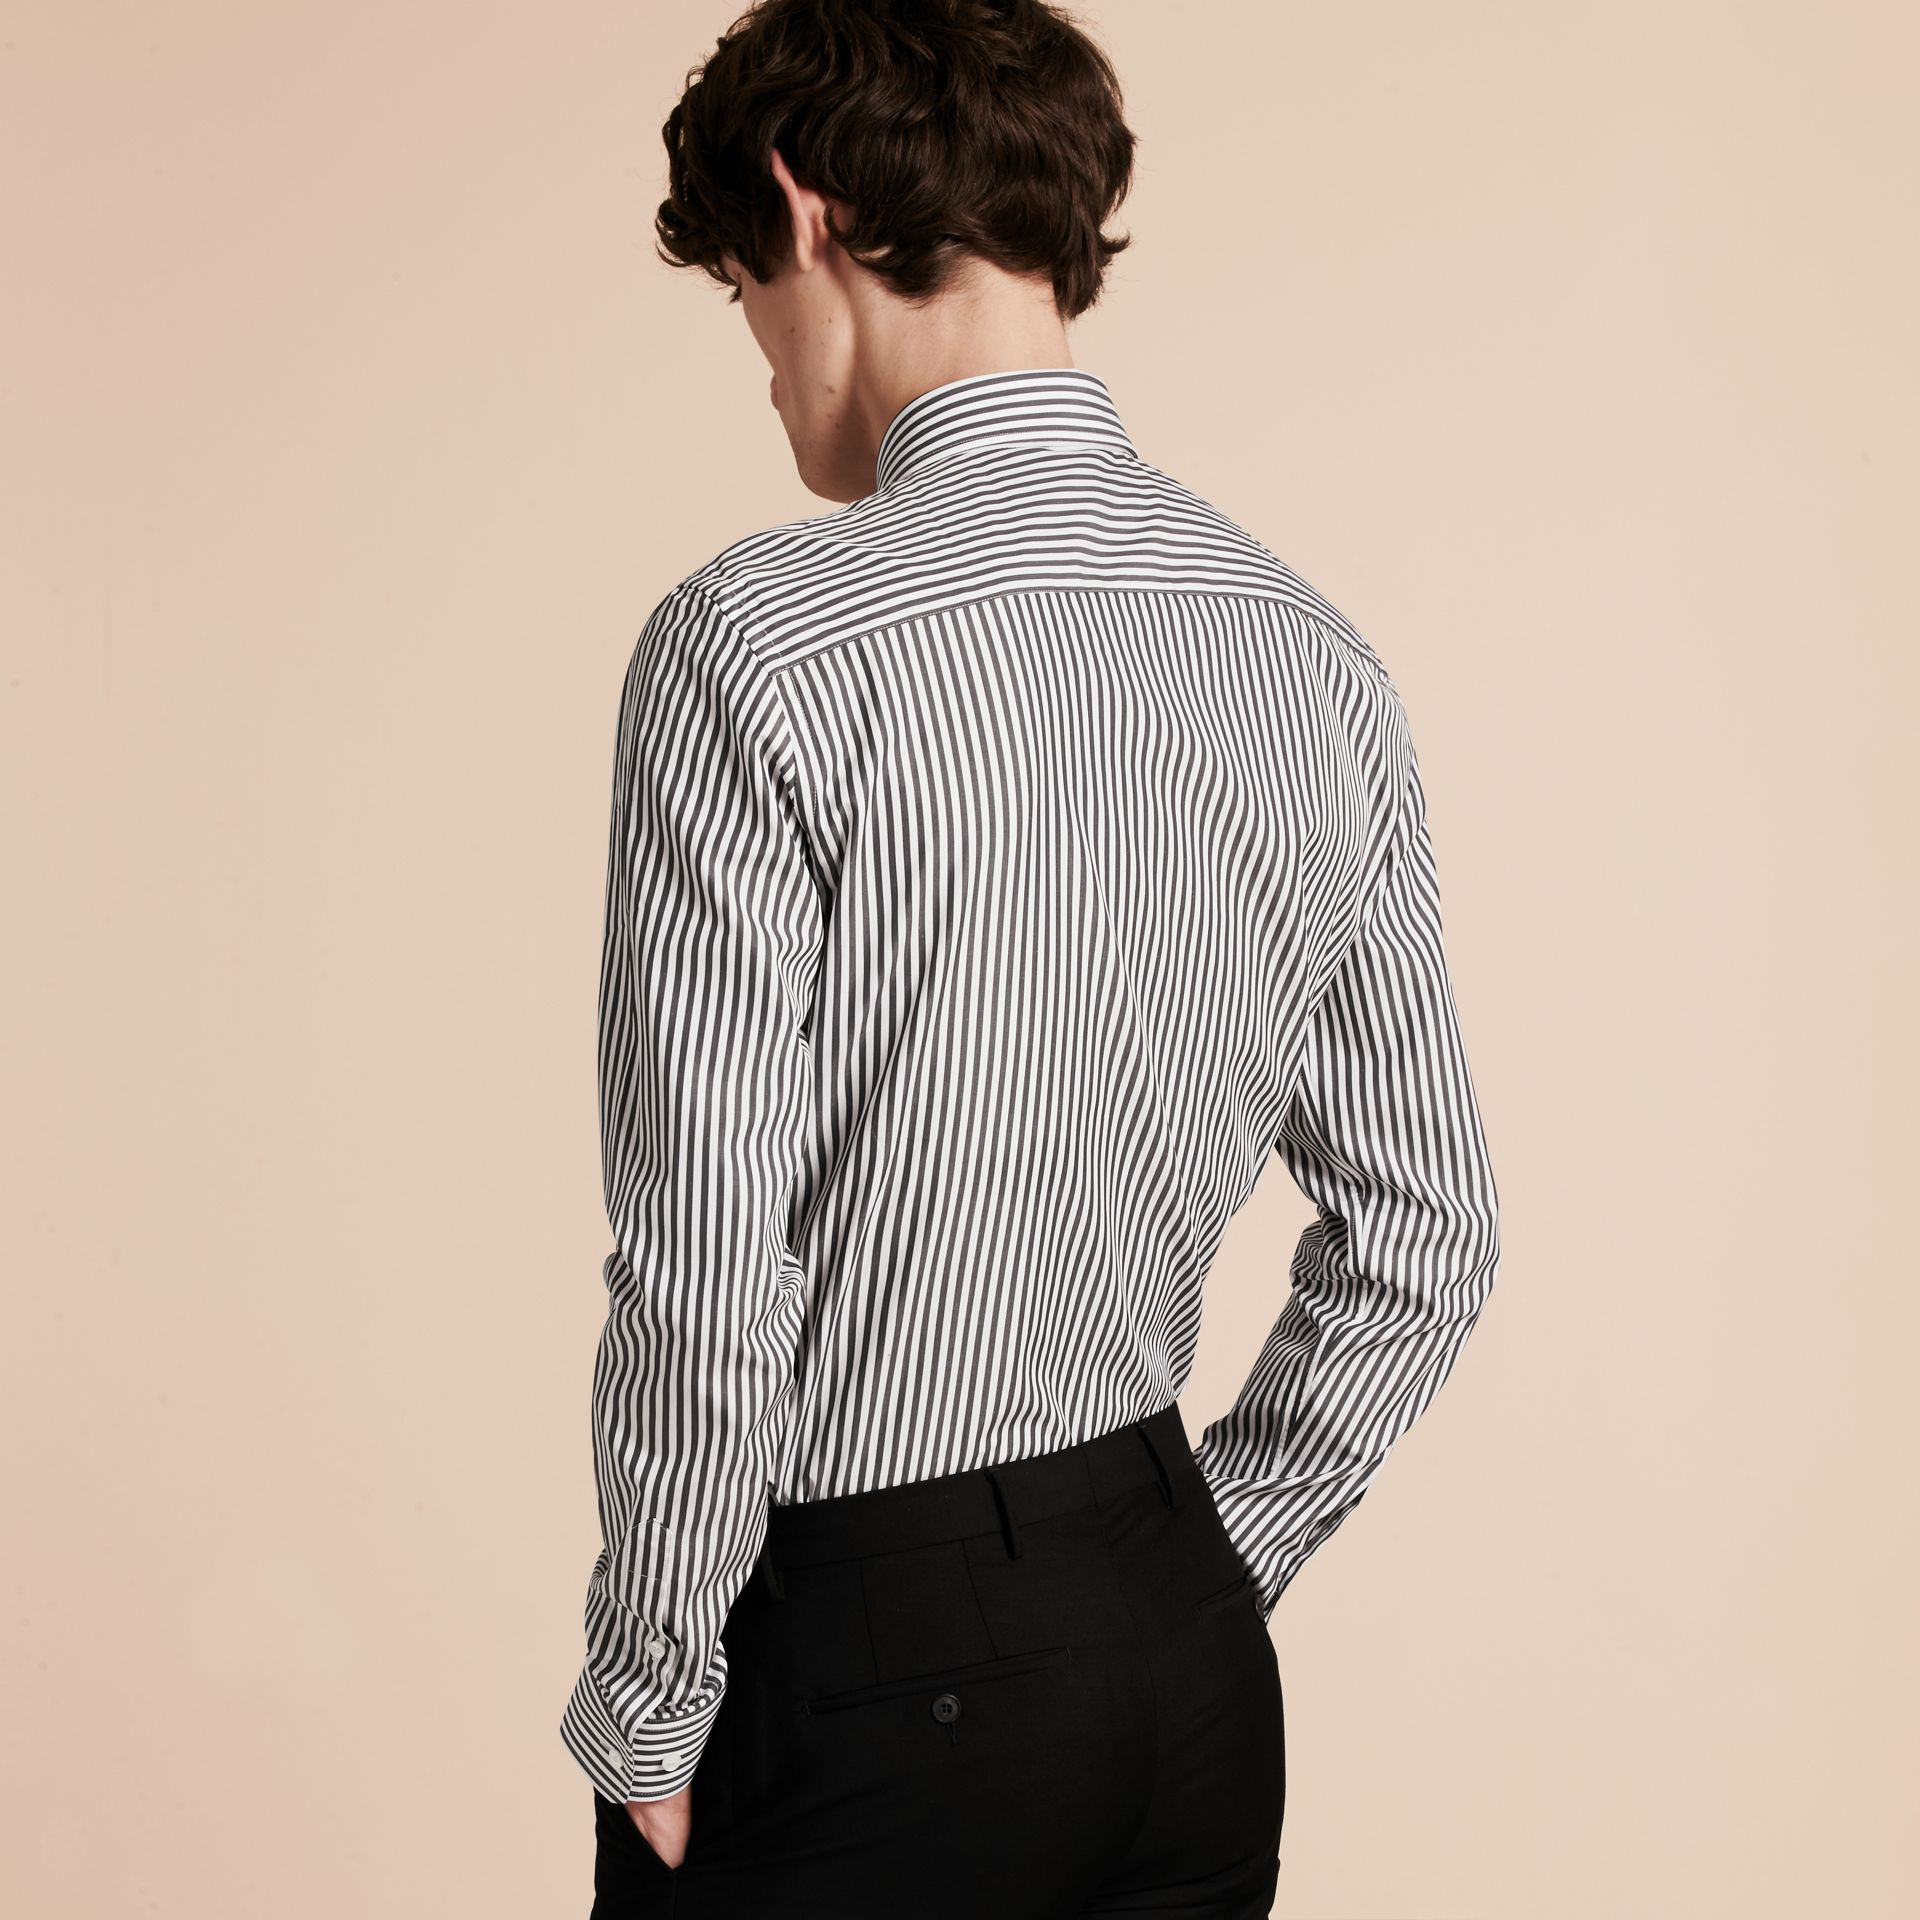 Charcoal Slim Fit Striped Cotton Poplin Shirt Charcoal - gallery image 3